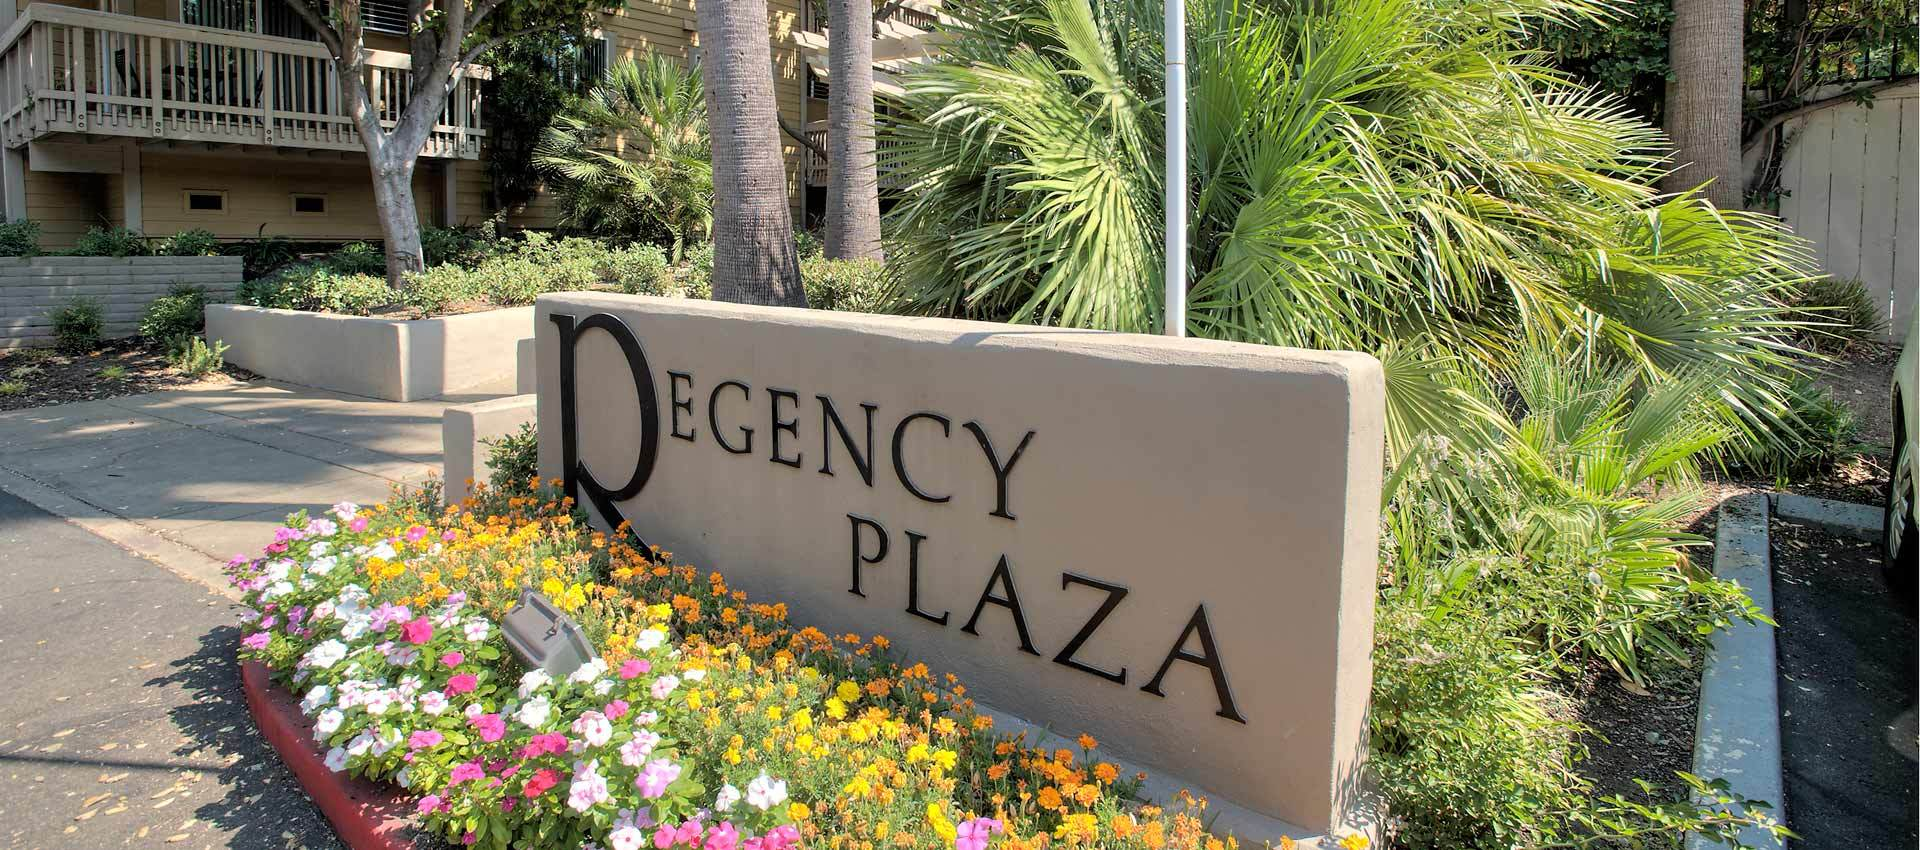 Signage at Regency Plaza Apartment Homes in Martinez, CA